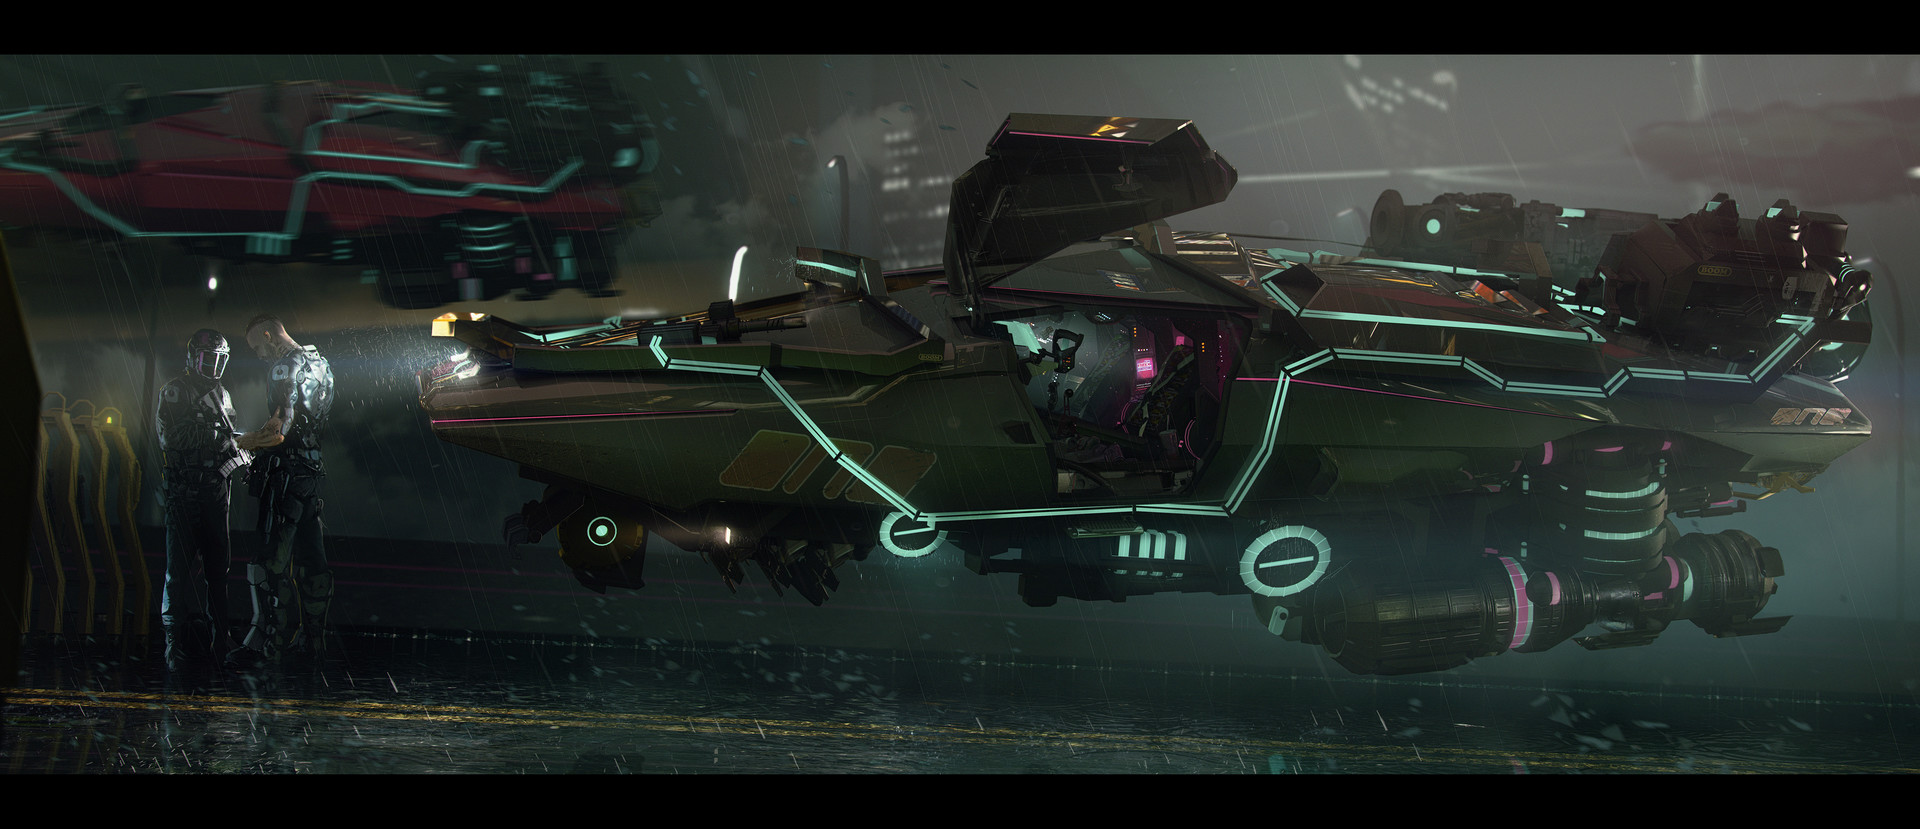 Brad wright obsidianreverie hover car mk2low